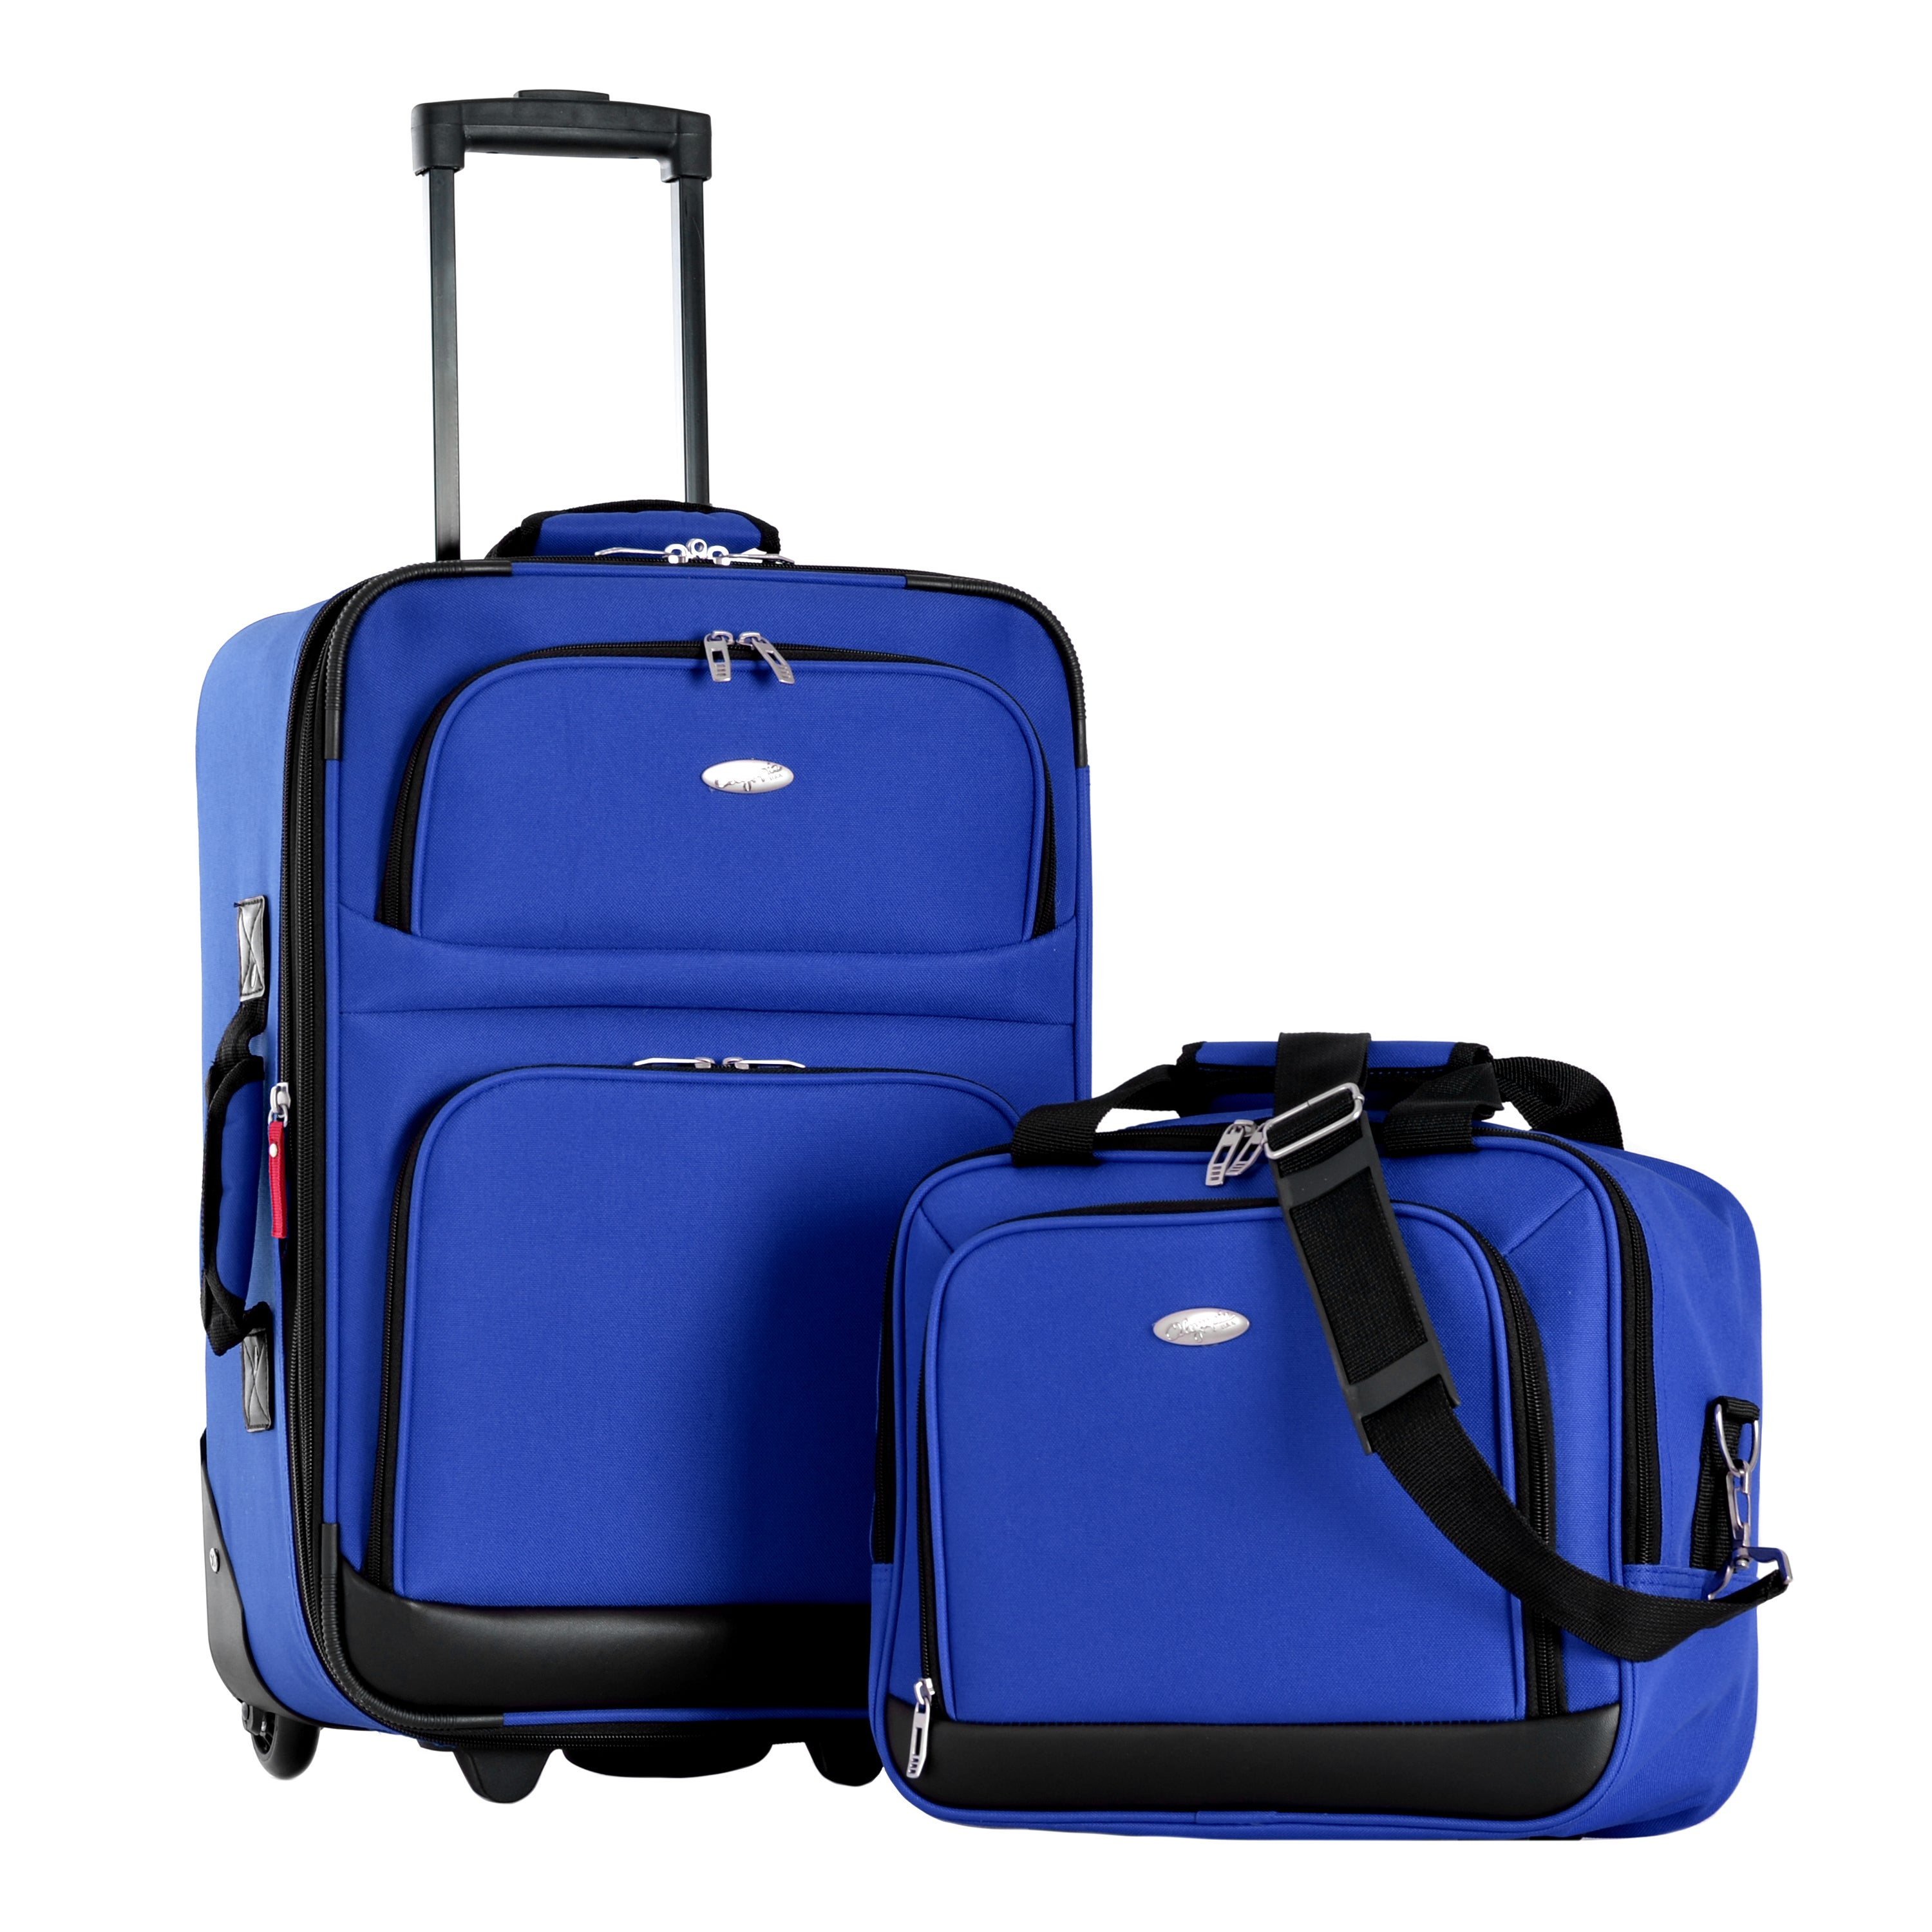 Olympia Let's Travel Blue 2-piece Expandable Carry-on Lug...